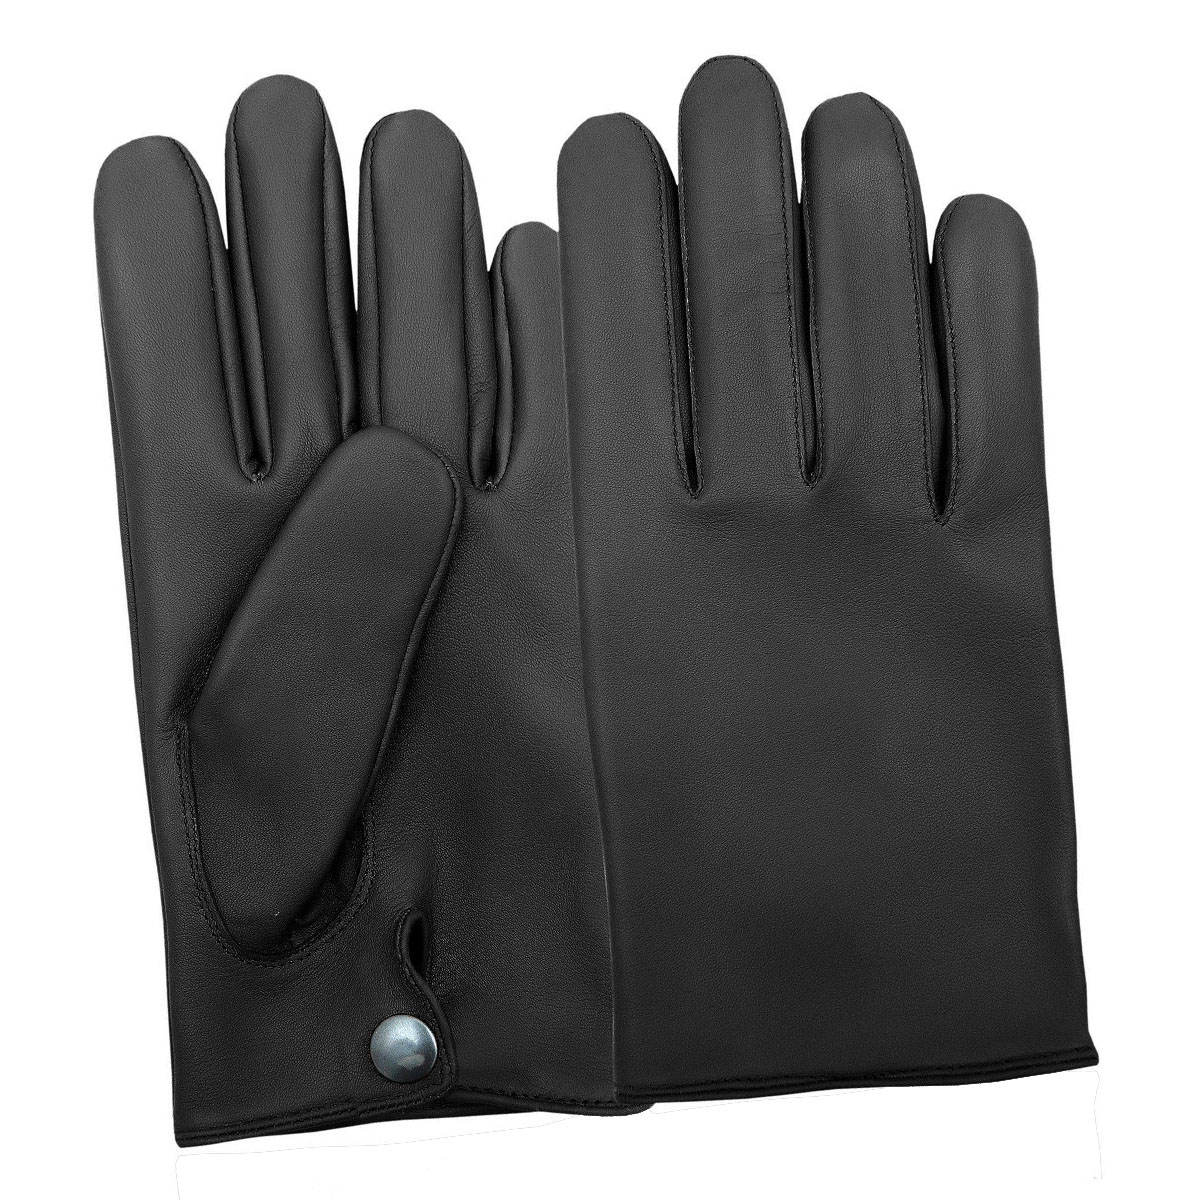 Driving gloves yahoo answers -  12 99